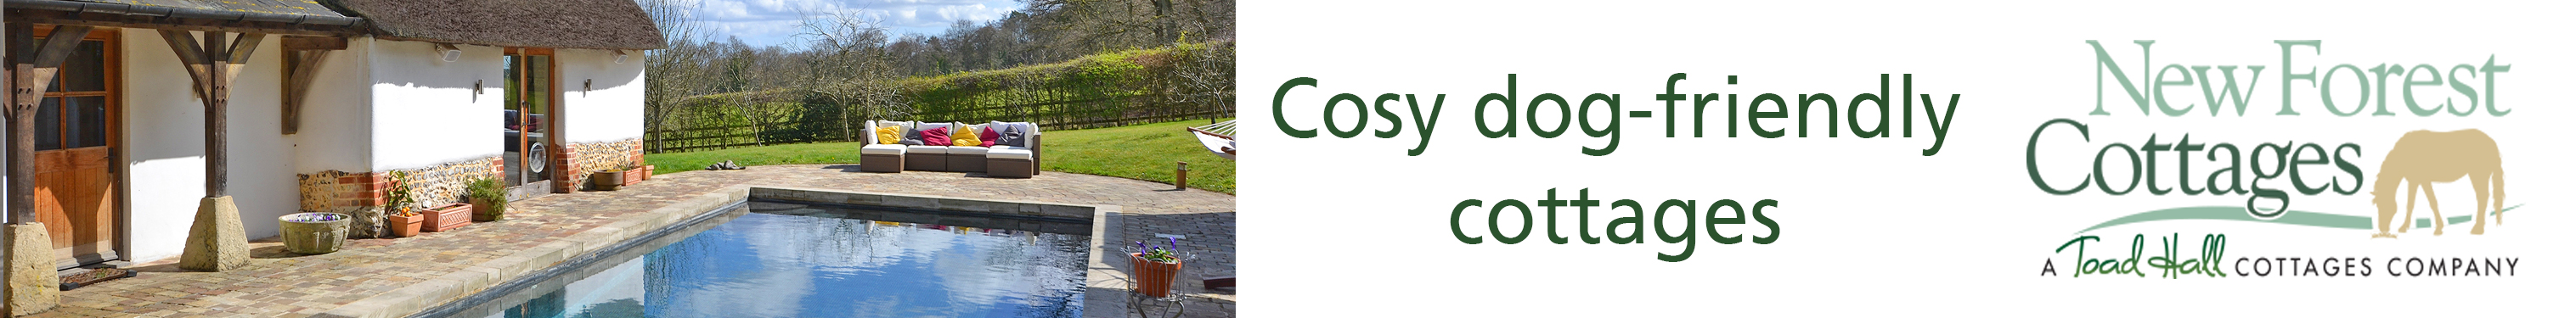 New Forest Cottages Banner